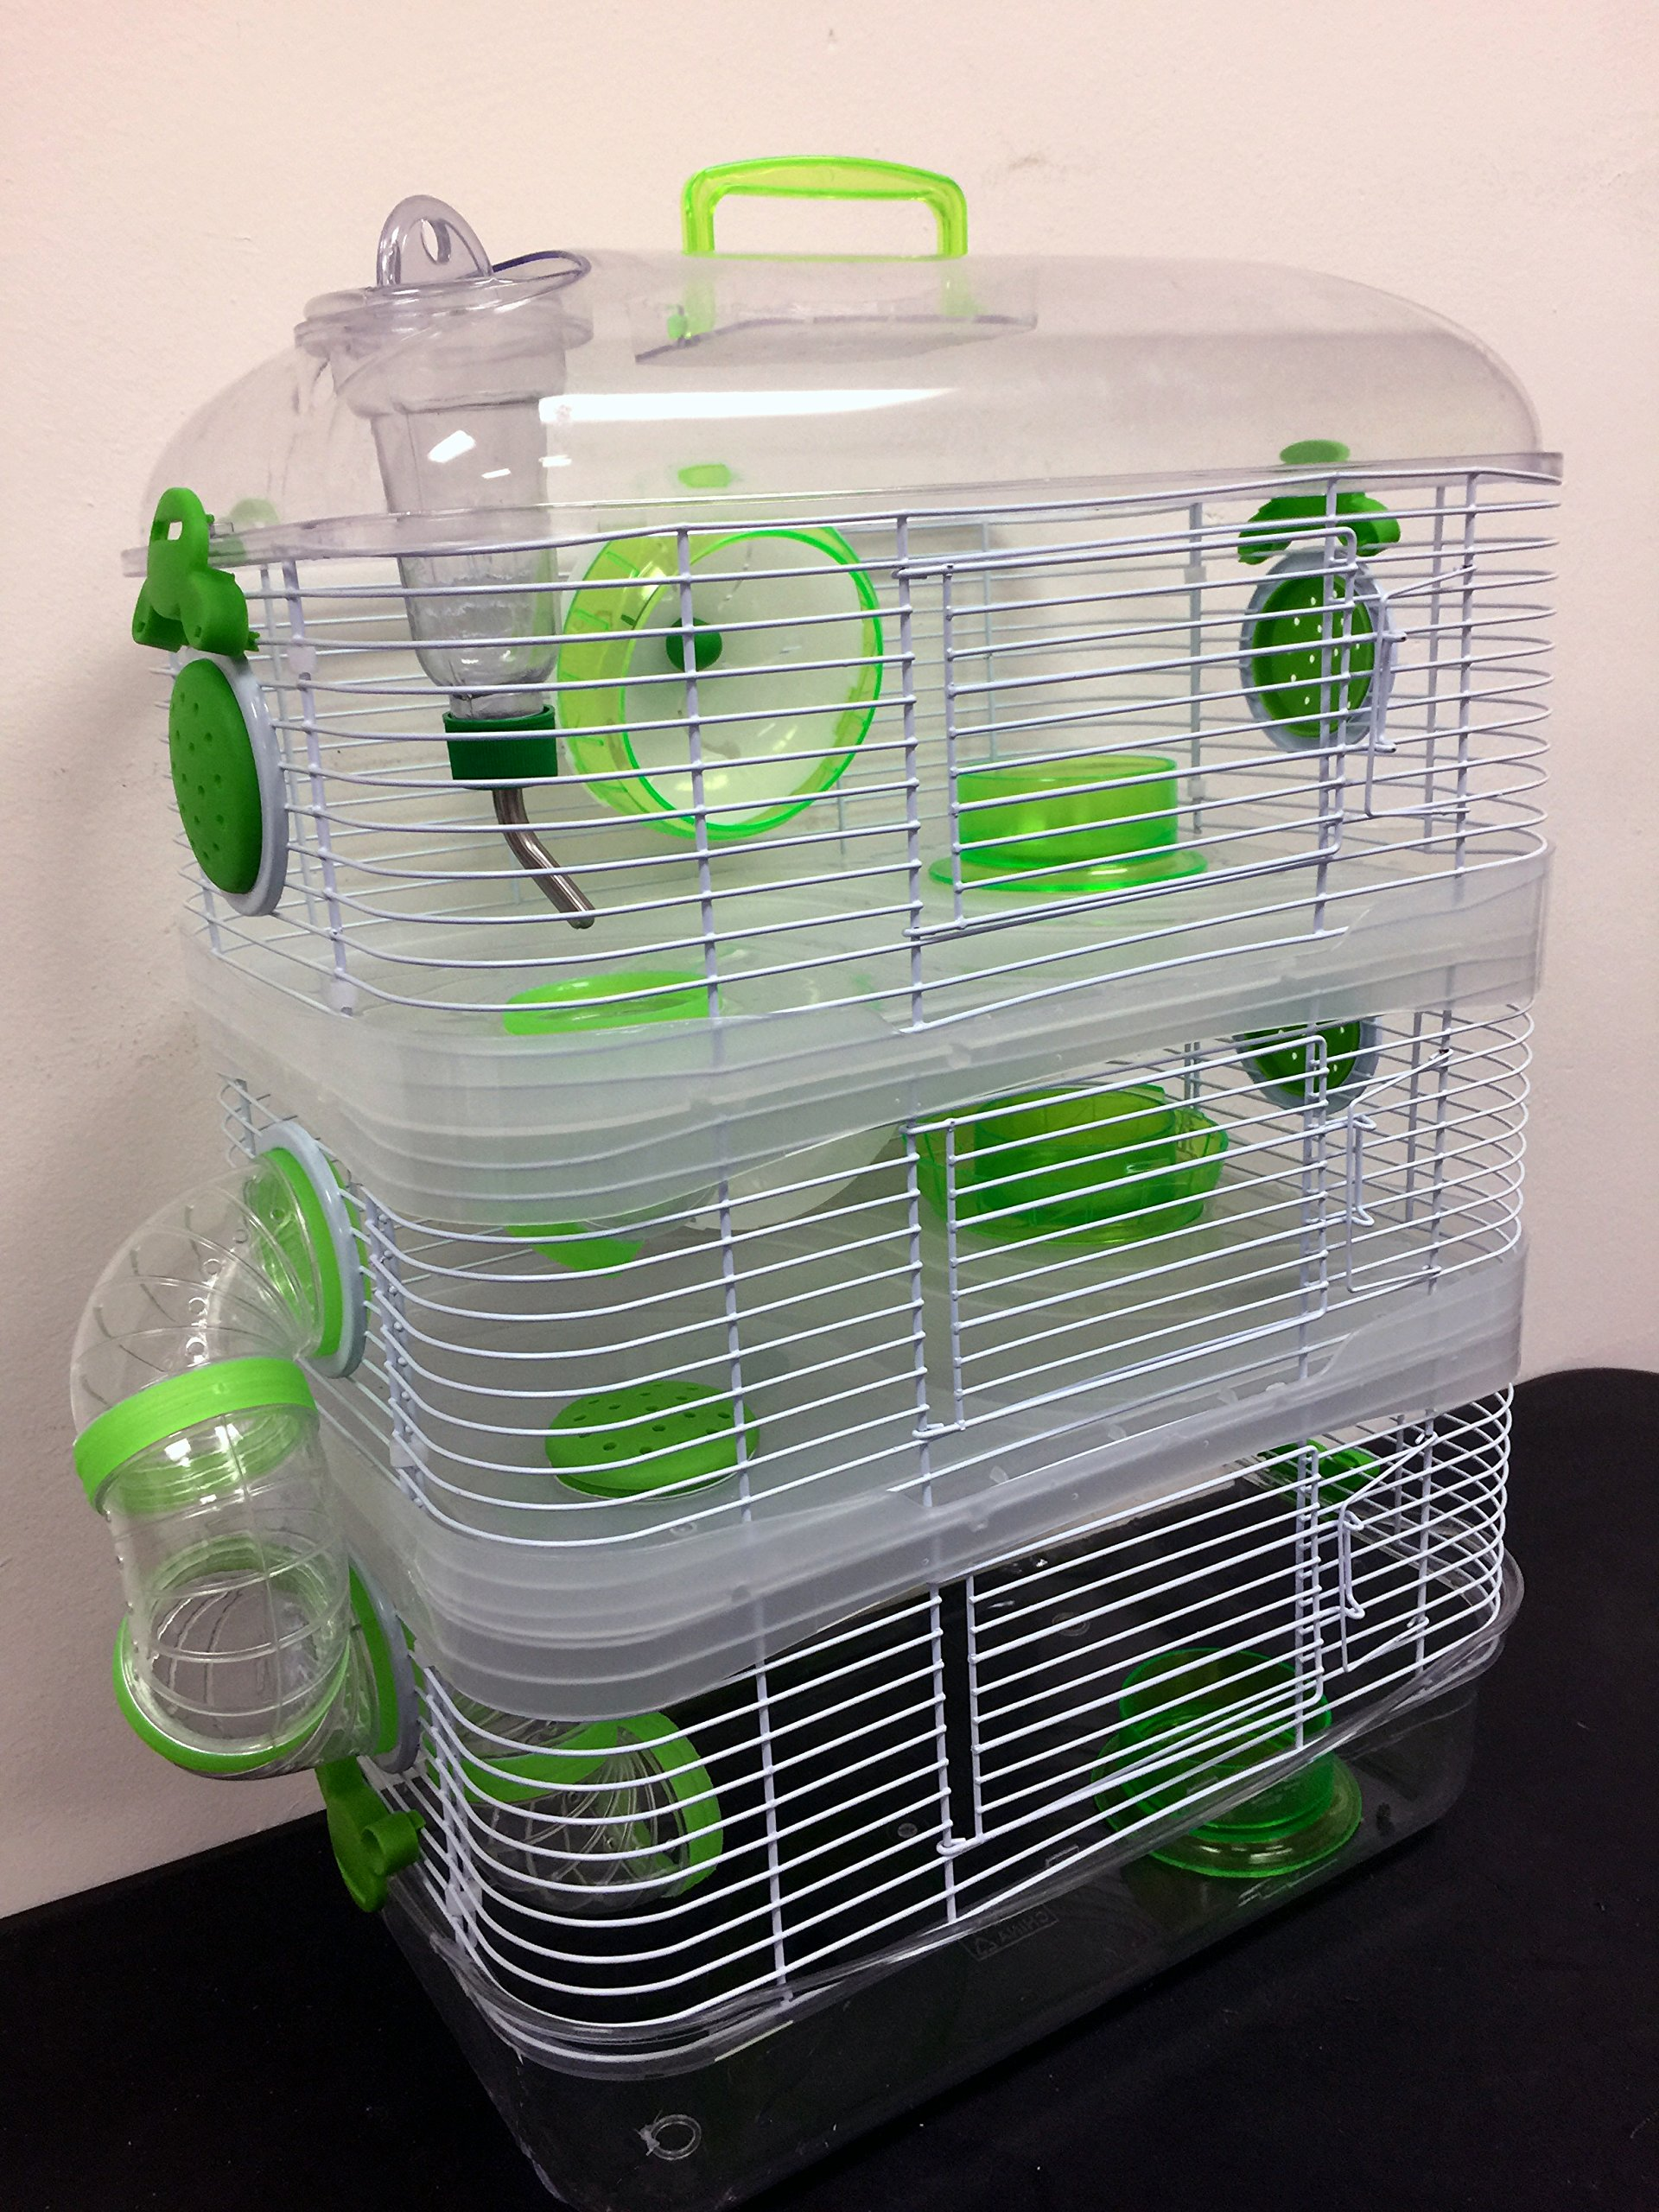 NEW 3 Solid Floor Levels Habitat Hamster Rodent Gerbil Mouse Mice CageClear Transparent